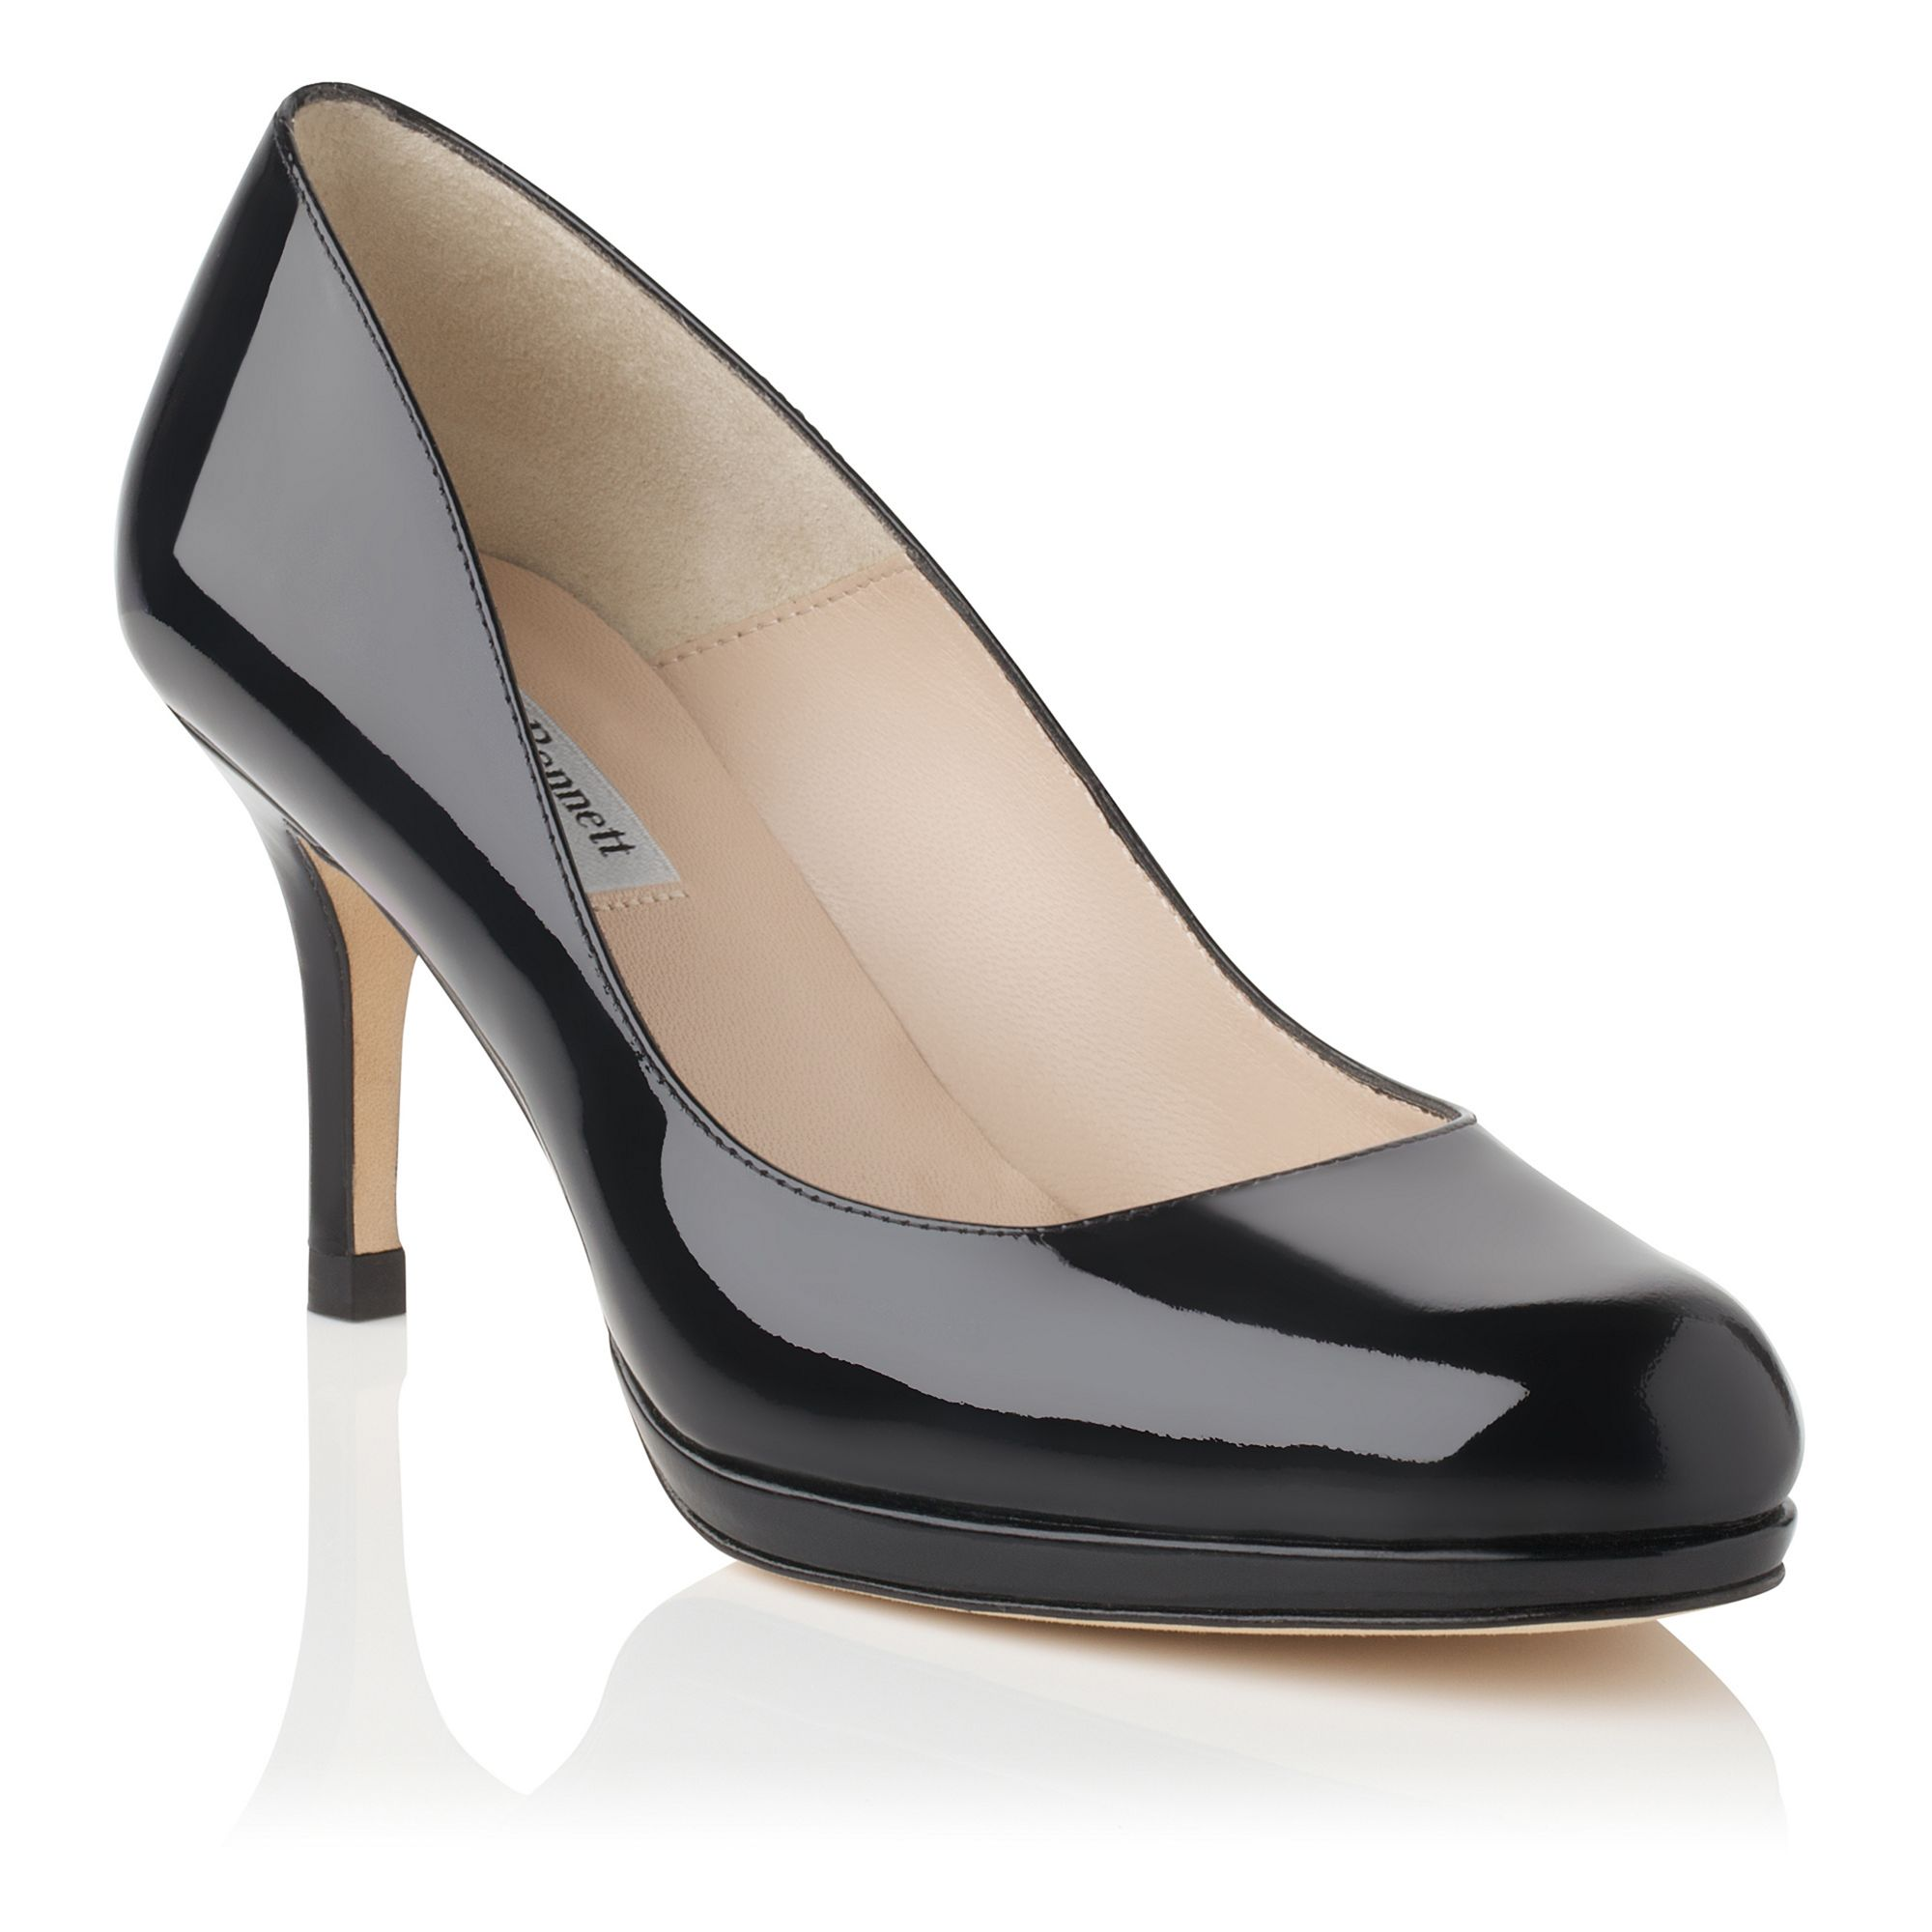 Can Patent Leather Shoes Be Worn Year Round